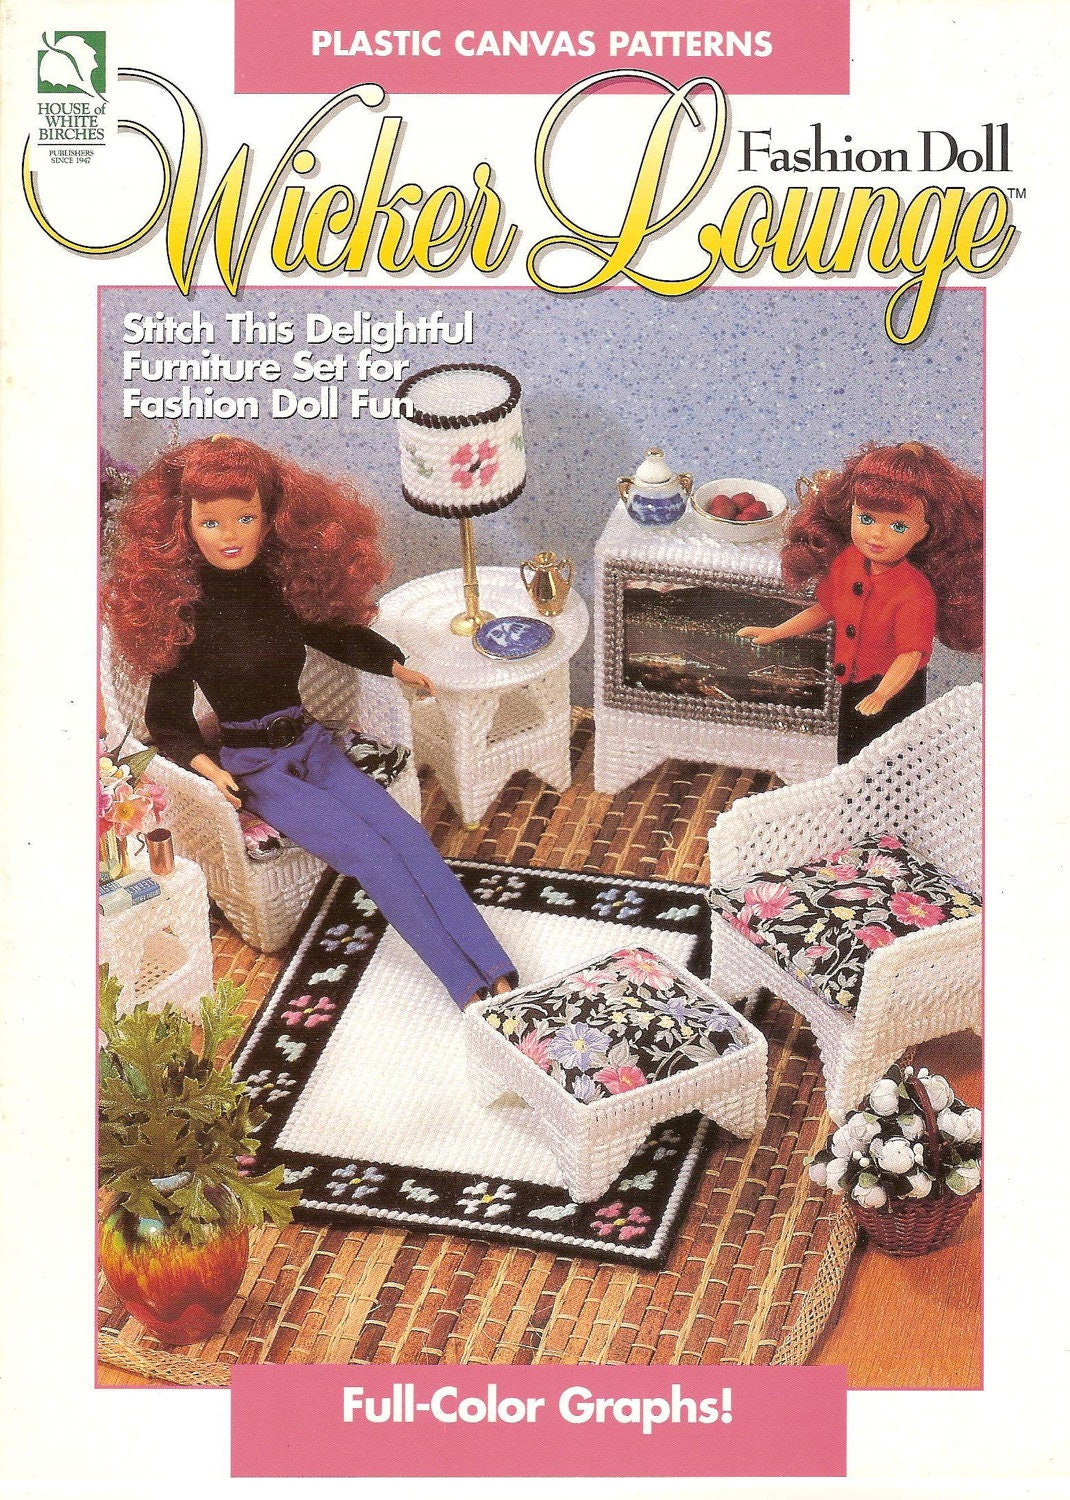 Plastic Canvas Barbie Doll Furniture Pattern Plastic Canvas